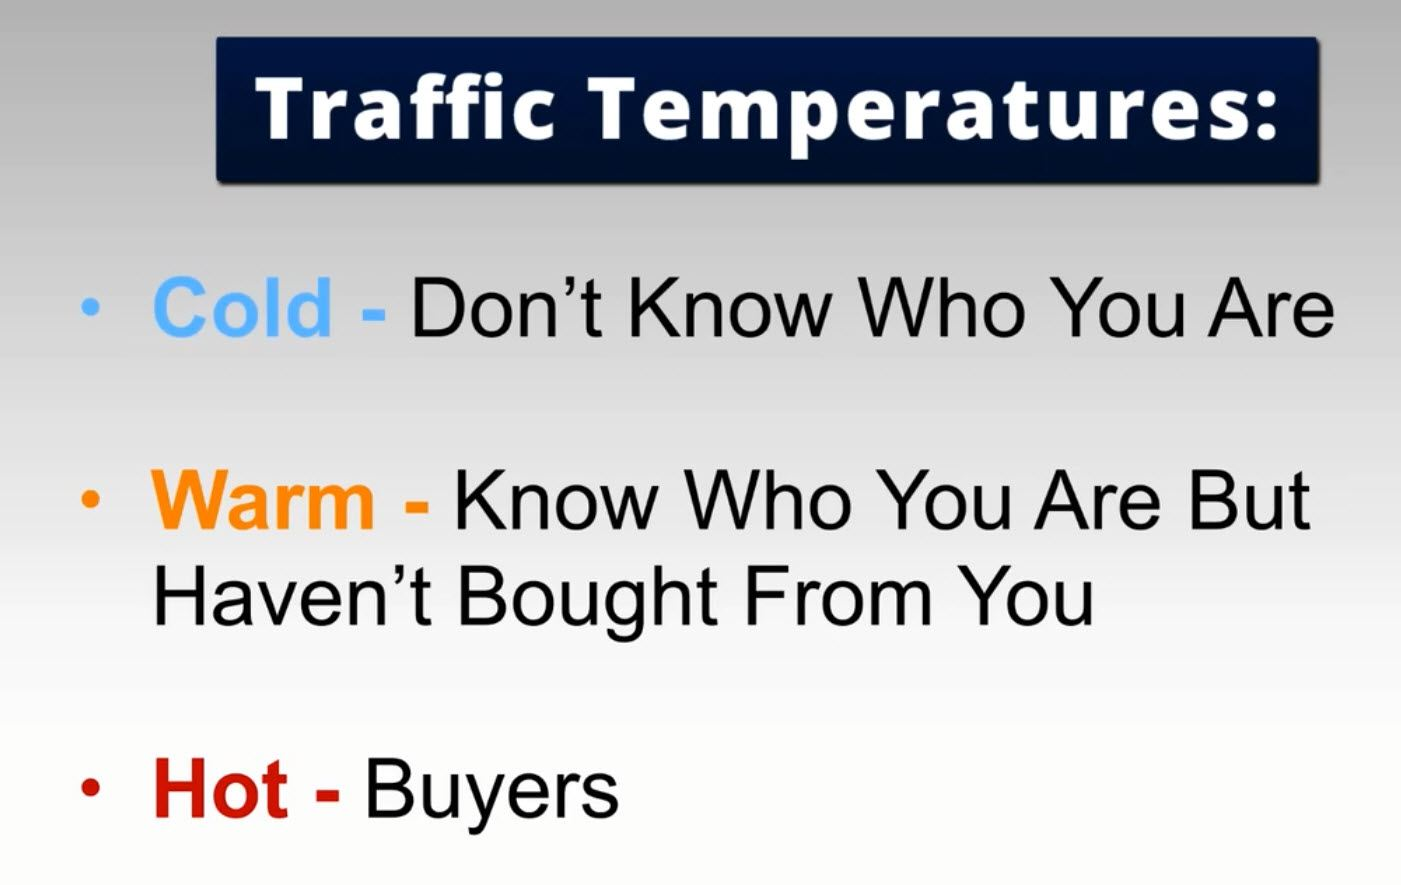 Traffic temperatures